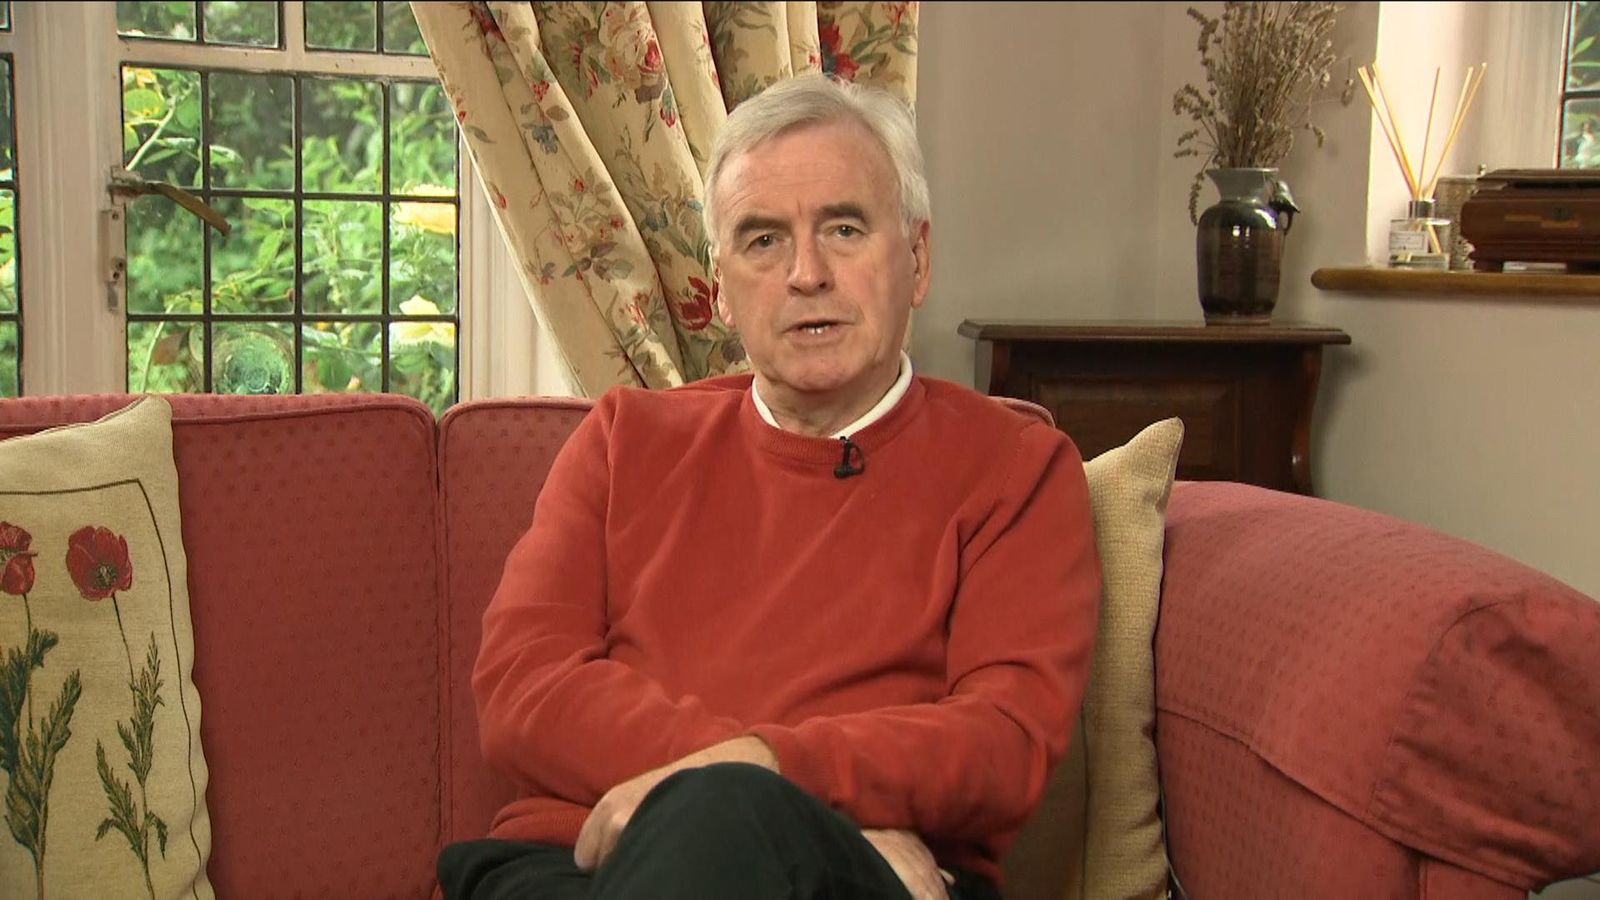 Shadow chancellor John McDonnell: 'We'll work with anyone to block no-deal Brexit'